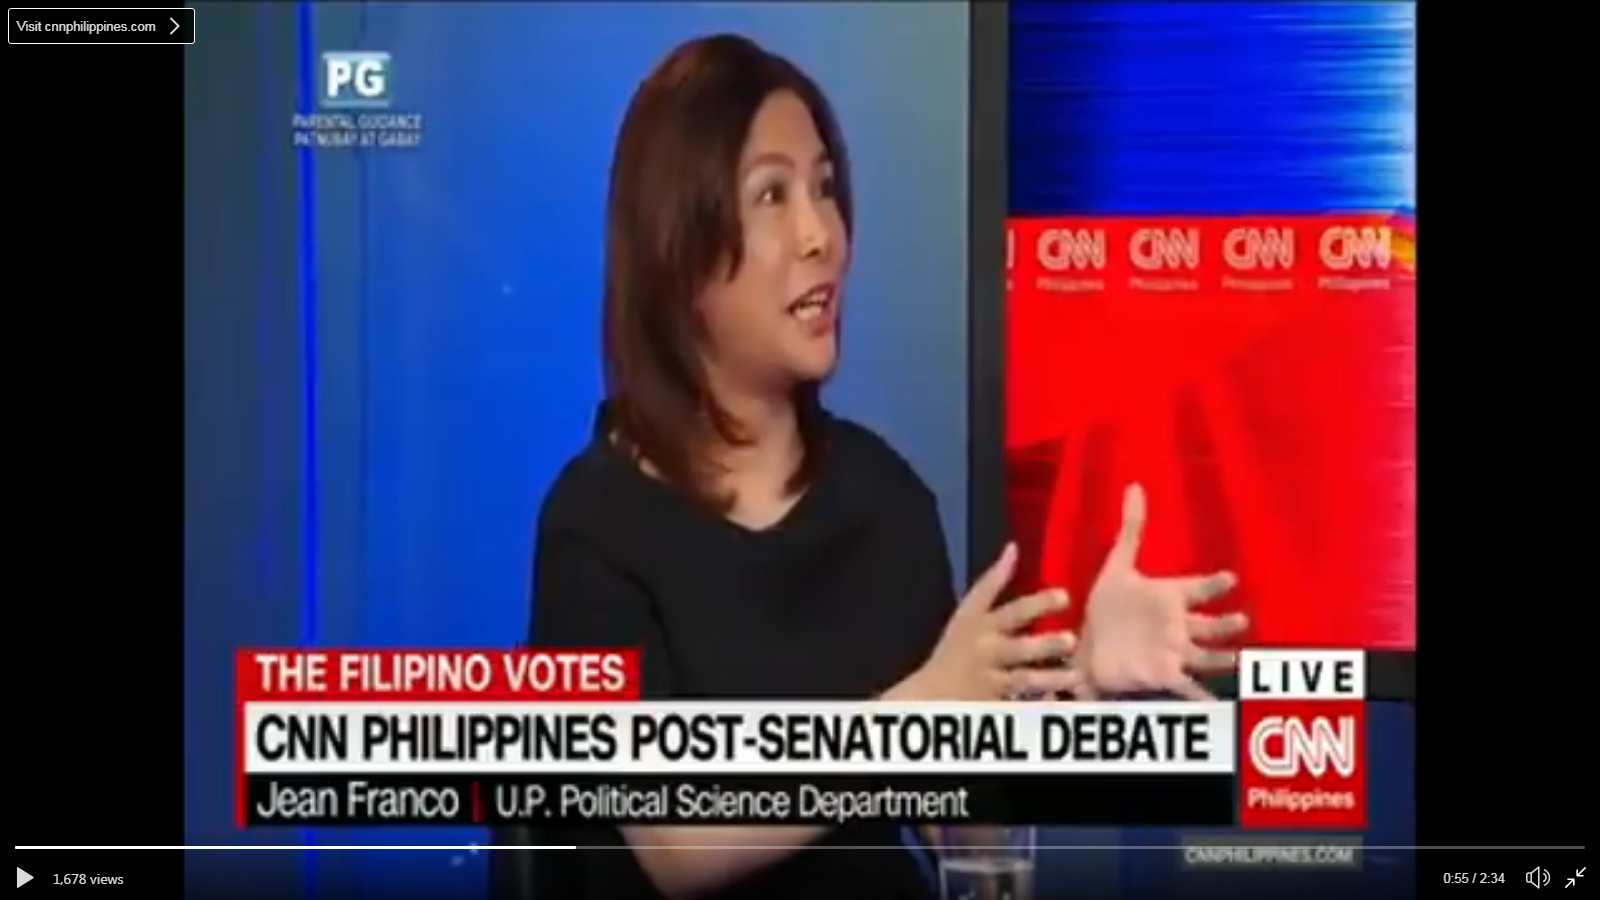 Post-senatorial debate analysis of CNN Philippines' The Filipino Votes